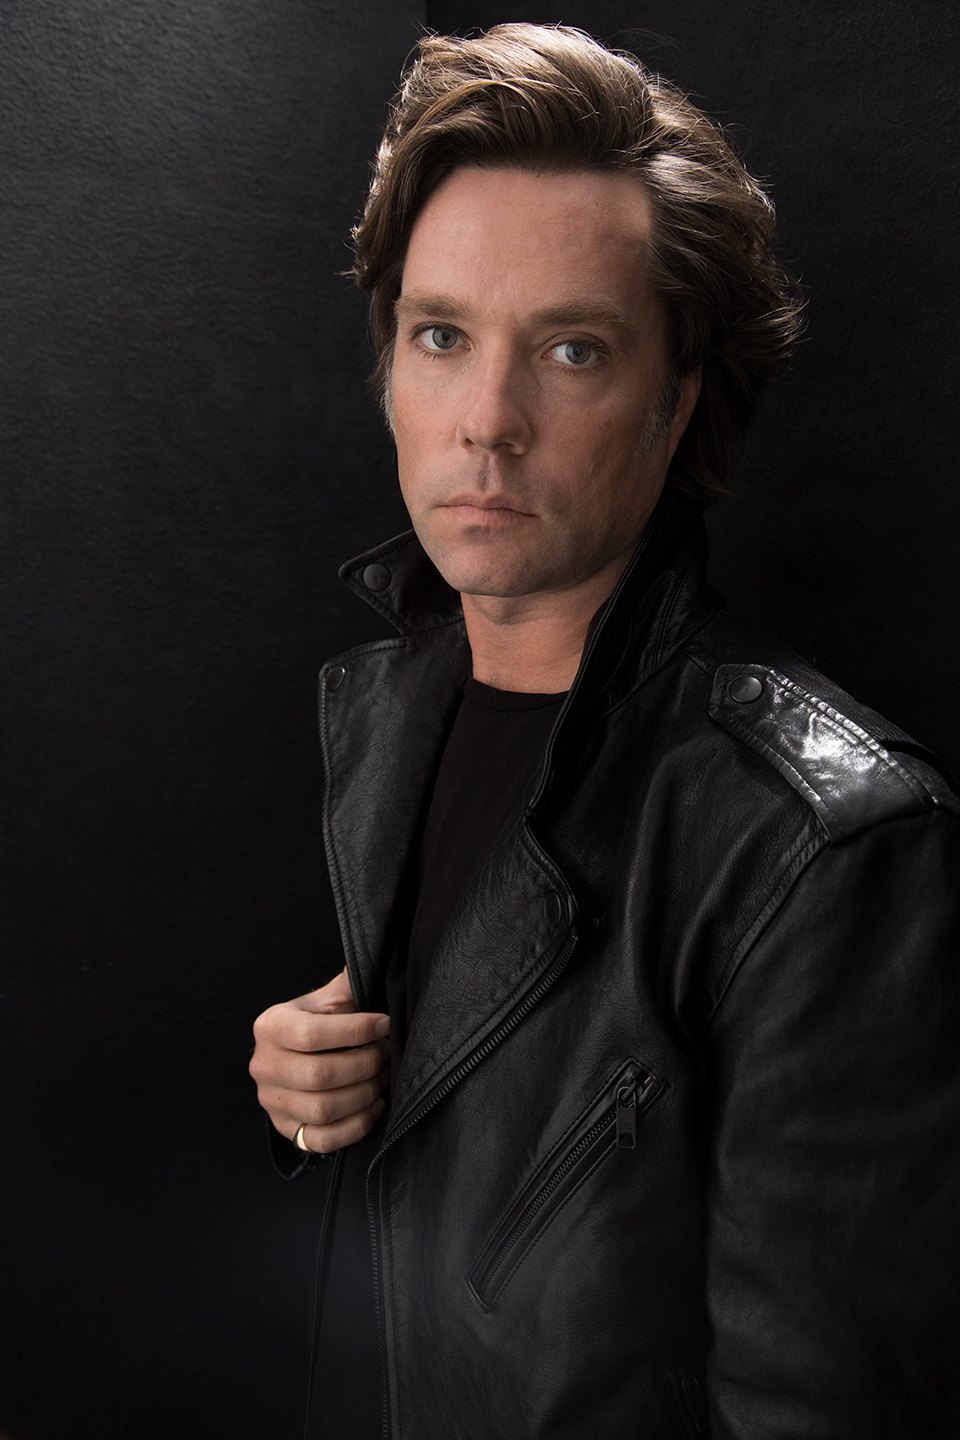 Learn More about Rufus Wainwright